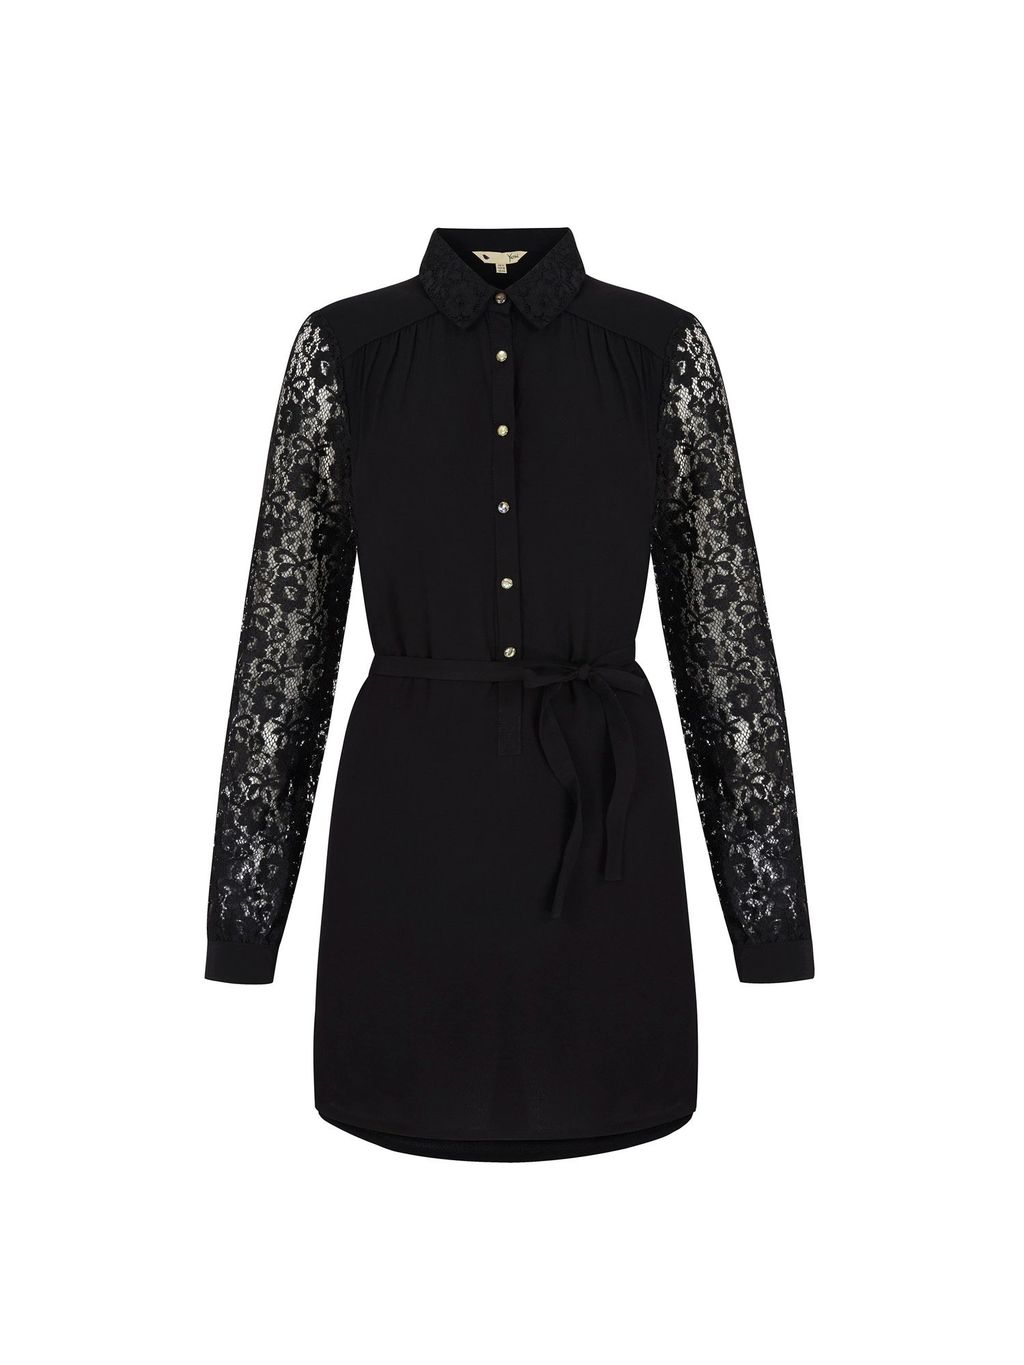 Lace Sleeve Shirt Dress, Black - style: shirt; neckline: shirt collar/peter pan/zip with opening; predominant colour: black; occasions: casual, evening, creative work; length: just above the knee; fit: fitted at waist & bust; fibres: viscose/rayon - 100%; sleeve length: long sleeve; sleeve style: standard; pattern type: fabric; pattern size: standard; pattern: patterned/print; texture group: other - light to midweight; embellishment: lace; season: s/s 2016; wardrobe: highlight